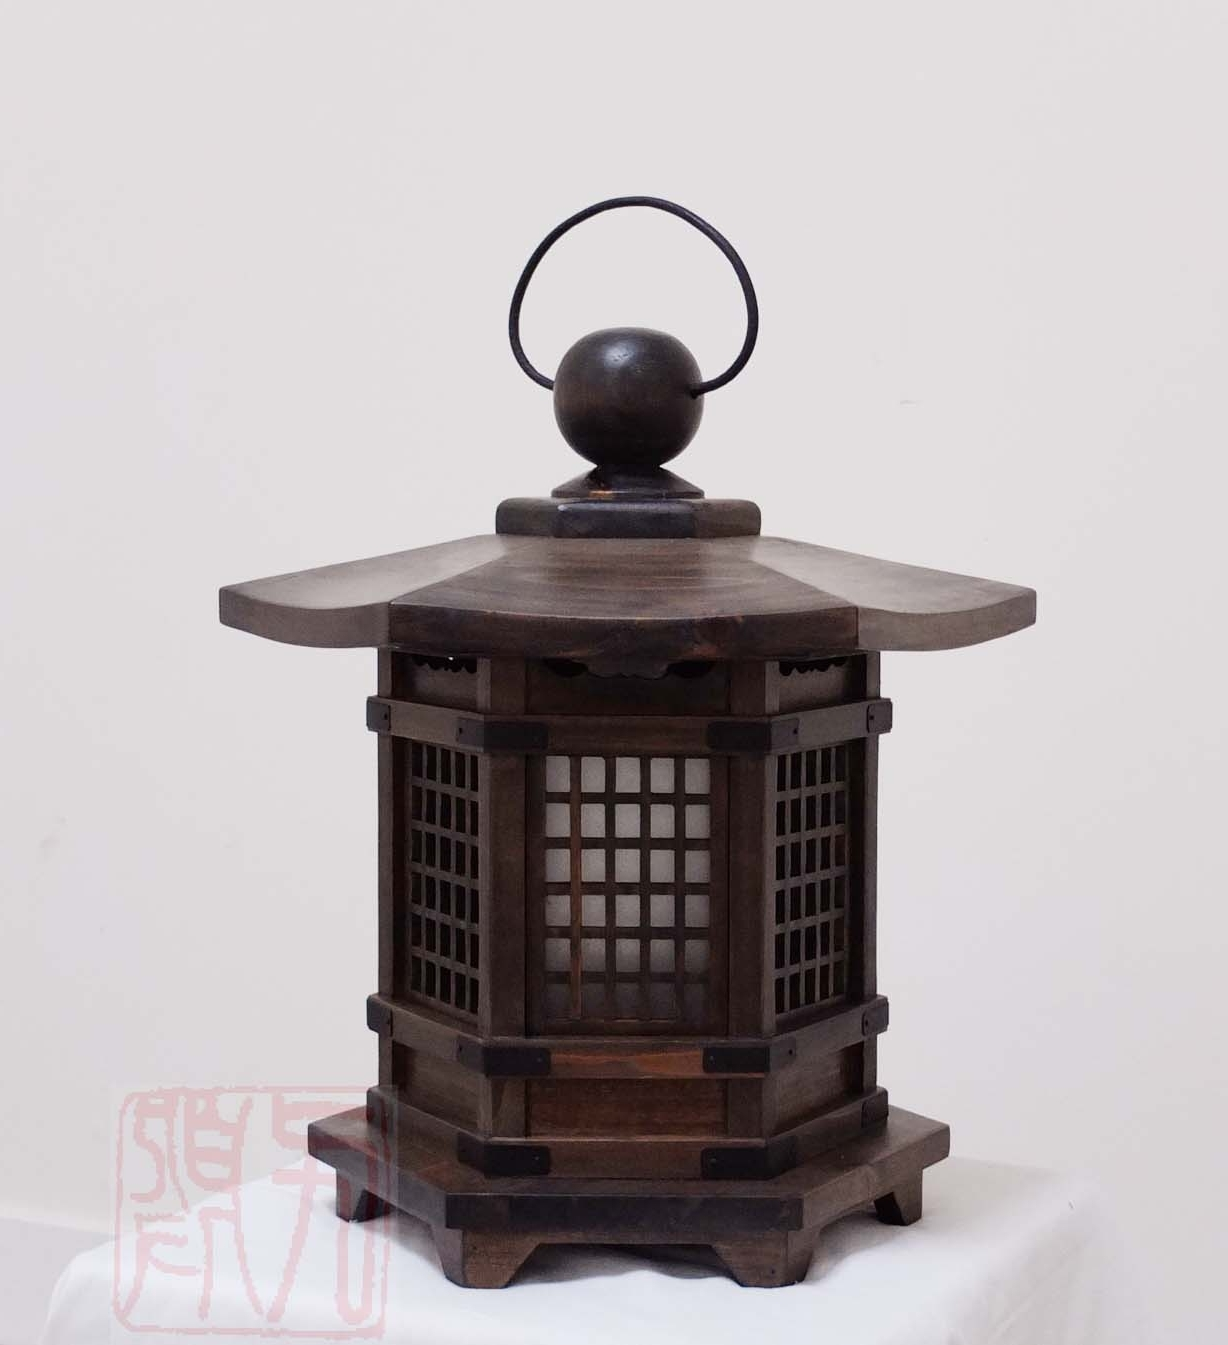 Fashionable Outdoor Japanese Lanterns Intended For Pagoda Lantern (wl1) – Eastern Classics (View 15 of 20)